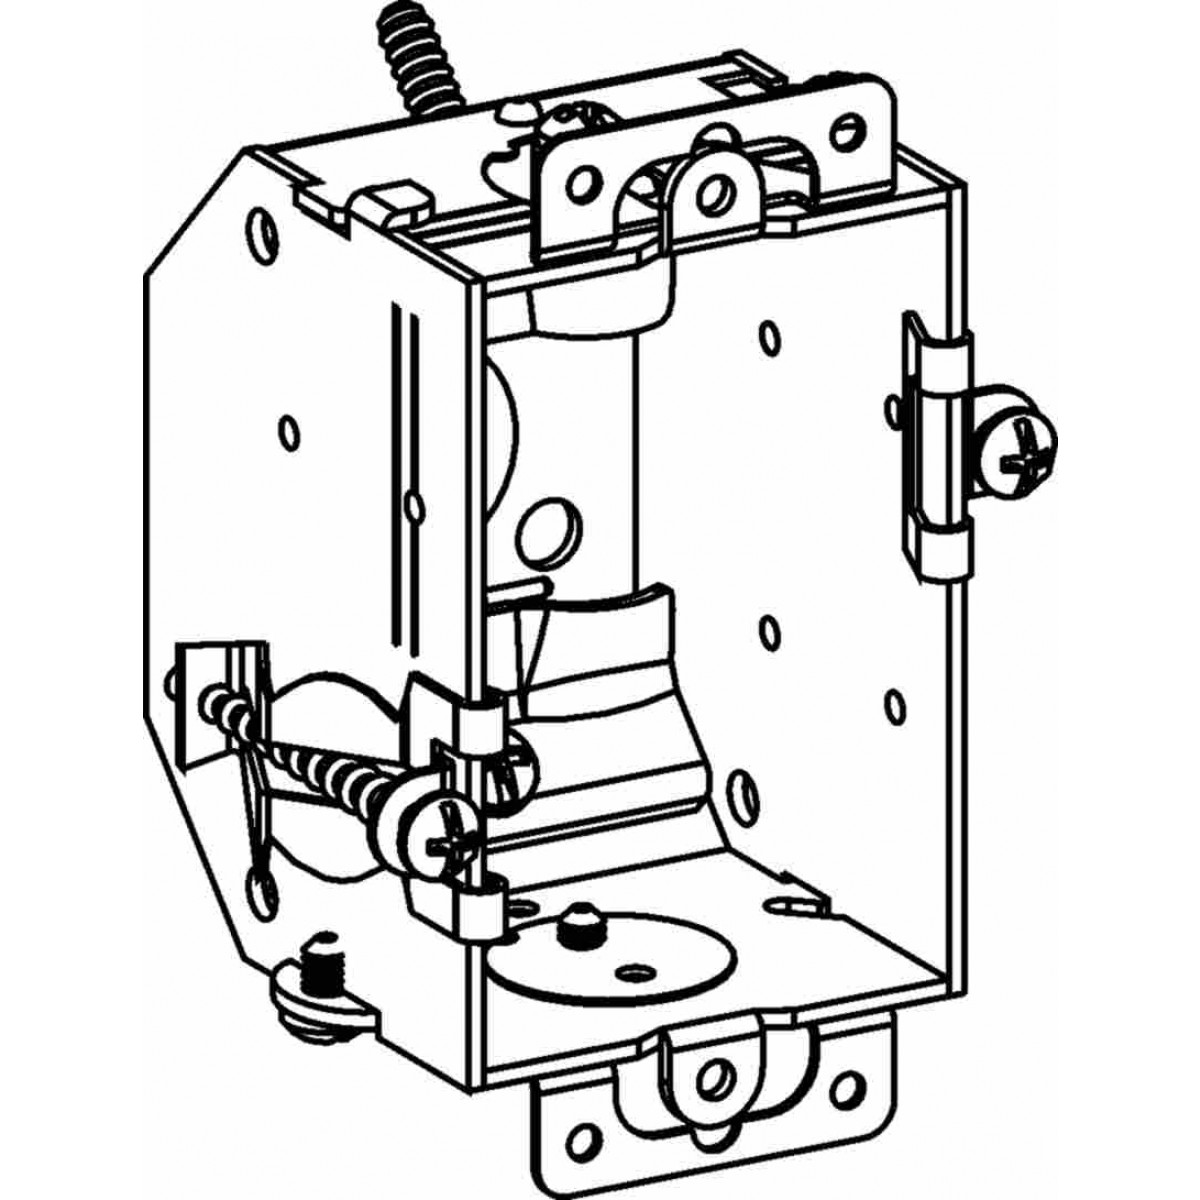 4 Gang Junction Box Dimensions, 4, Free Engine Image For